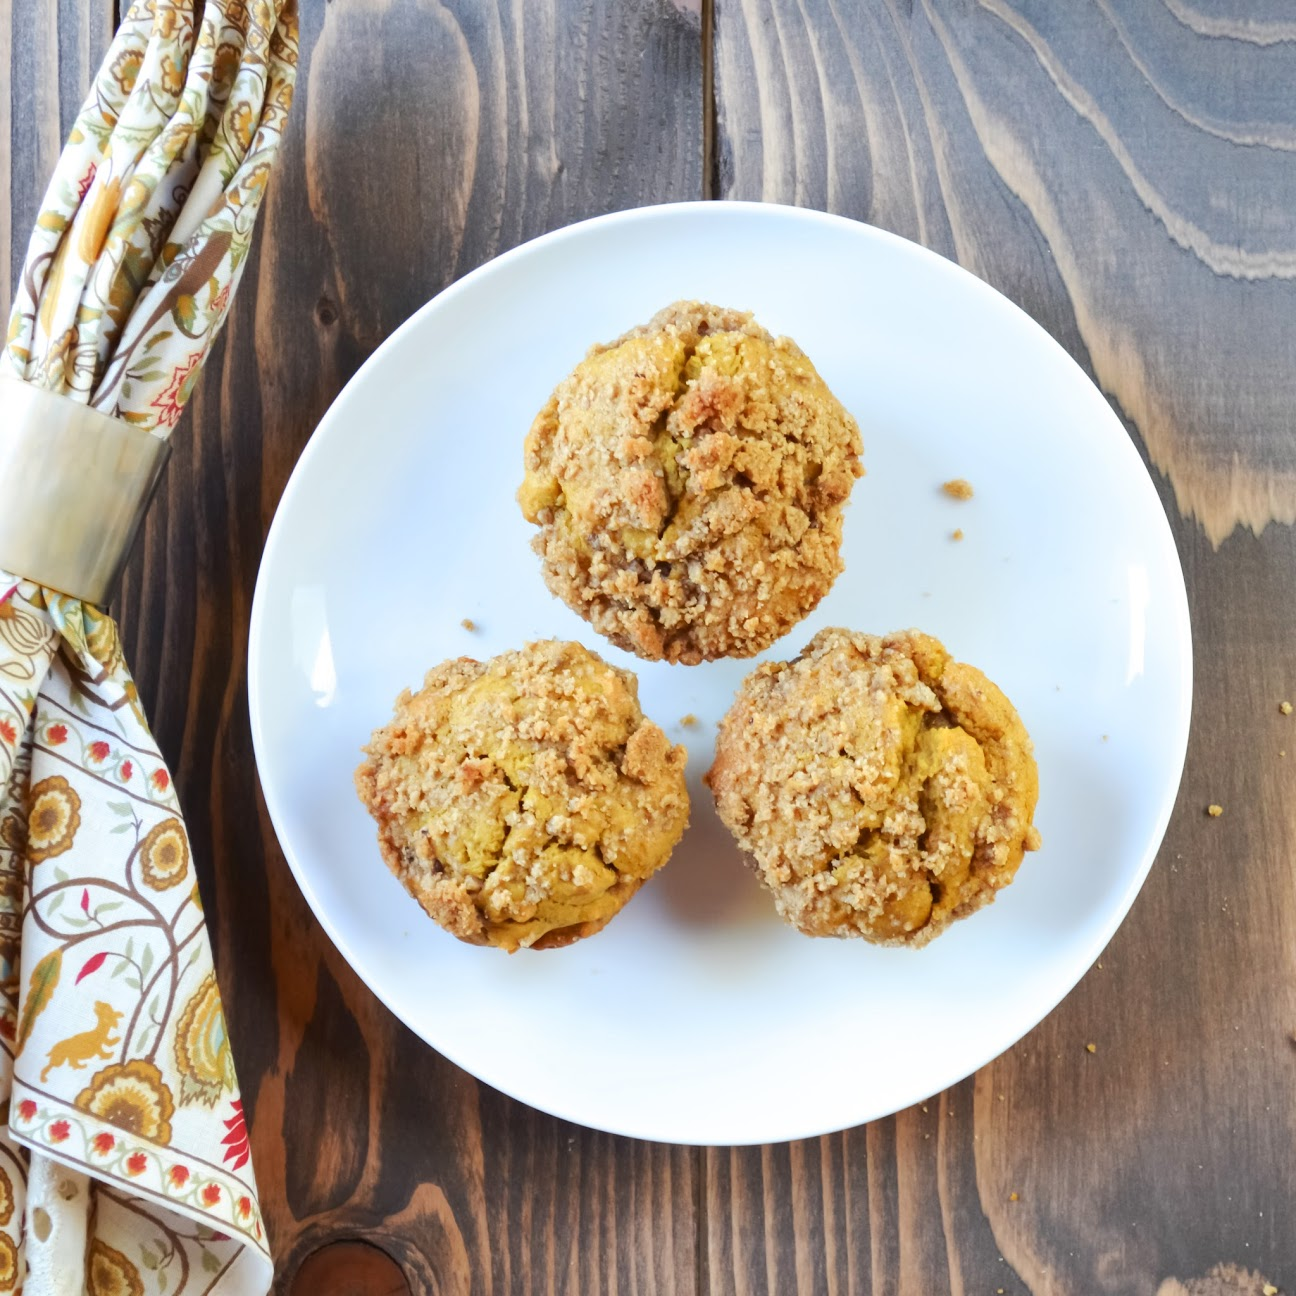 Pumpkin-Muffins-Spice-Crumb-Topping.jpg